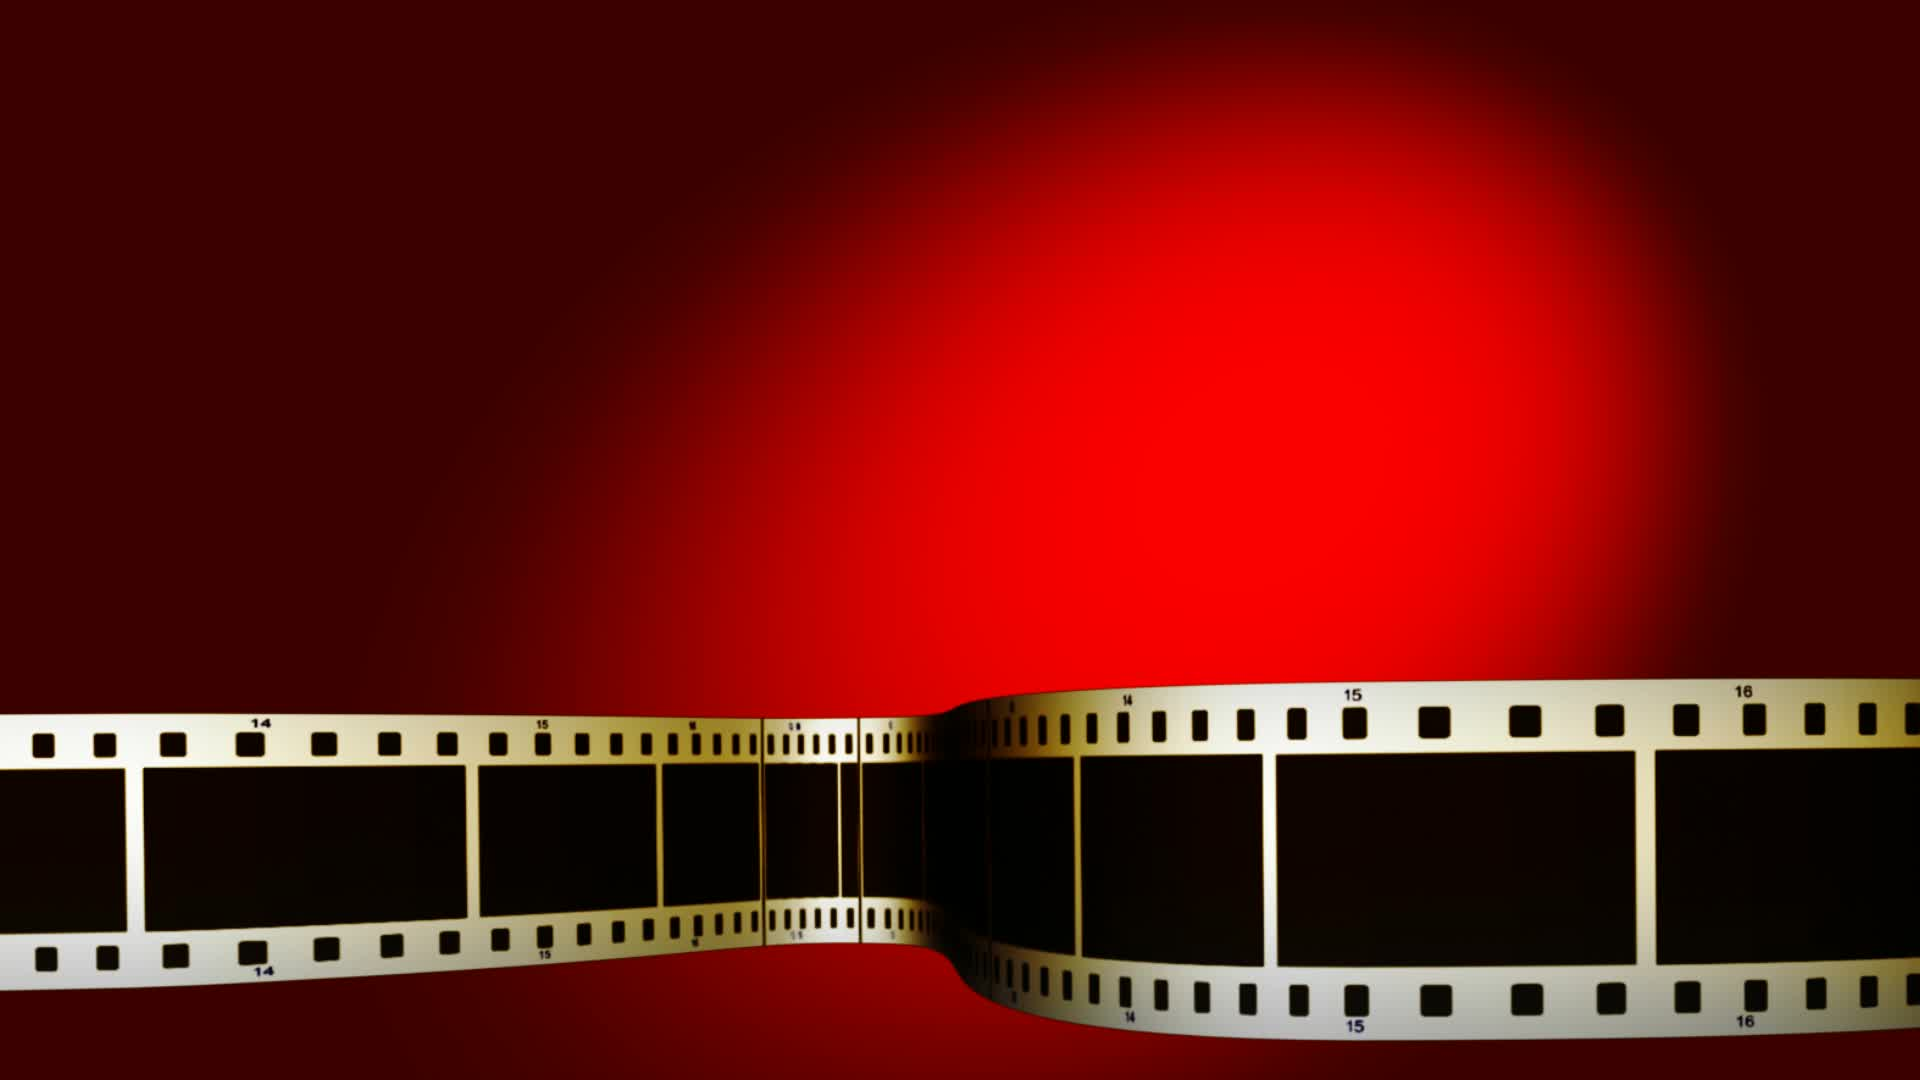 Filmstrip Lower Thirds Red Background Stock Video 20614809 HD Stock 1920x1080